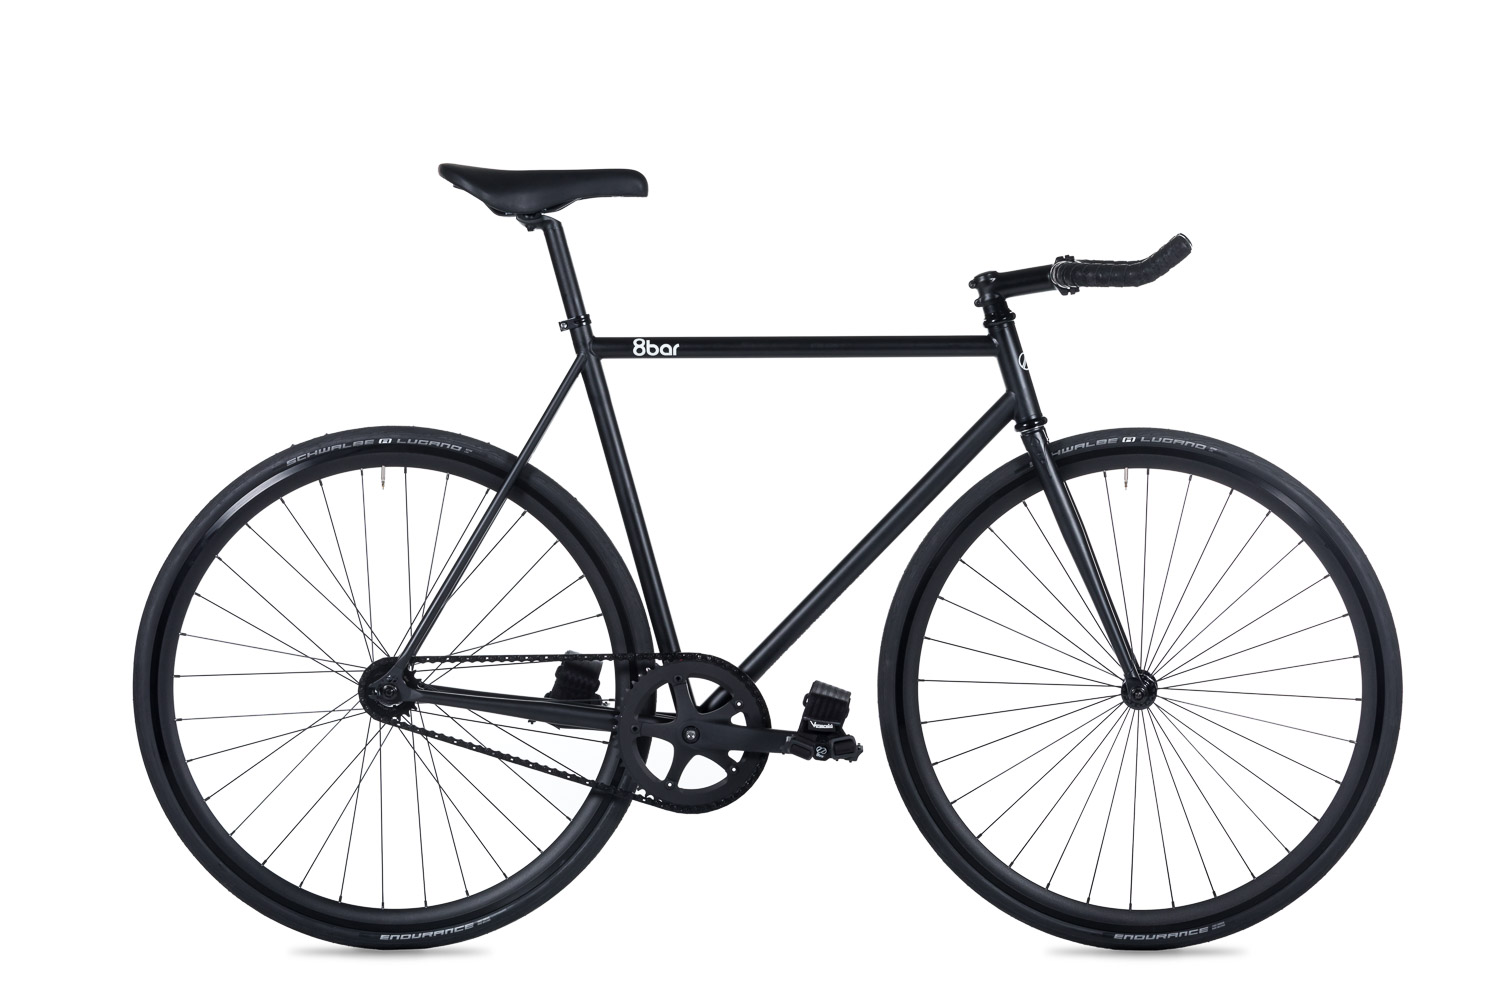 8bar-complete-bike-fhain-steel-comp-bullhorn-black-studio-fixed-gear-fixie-lr-1